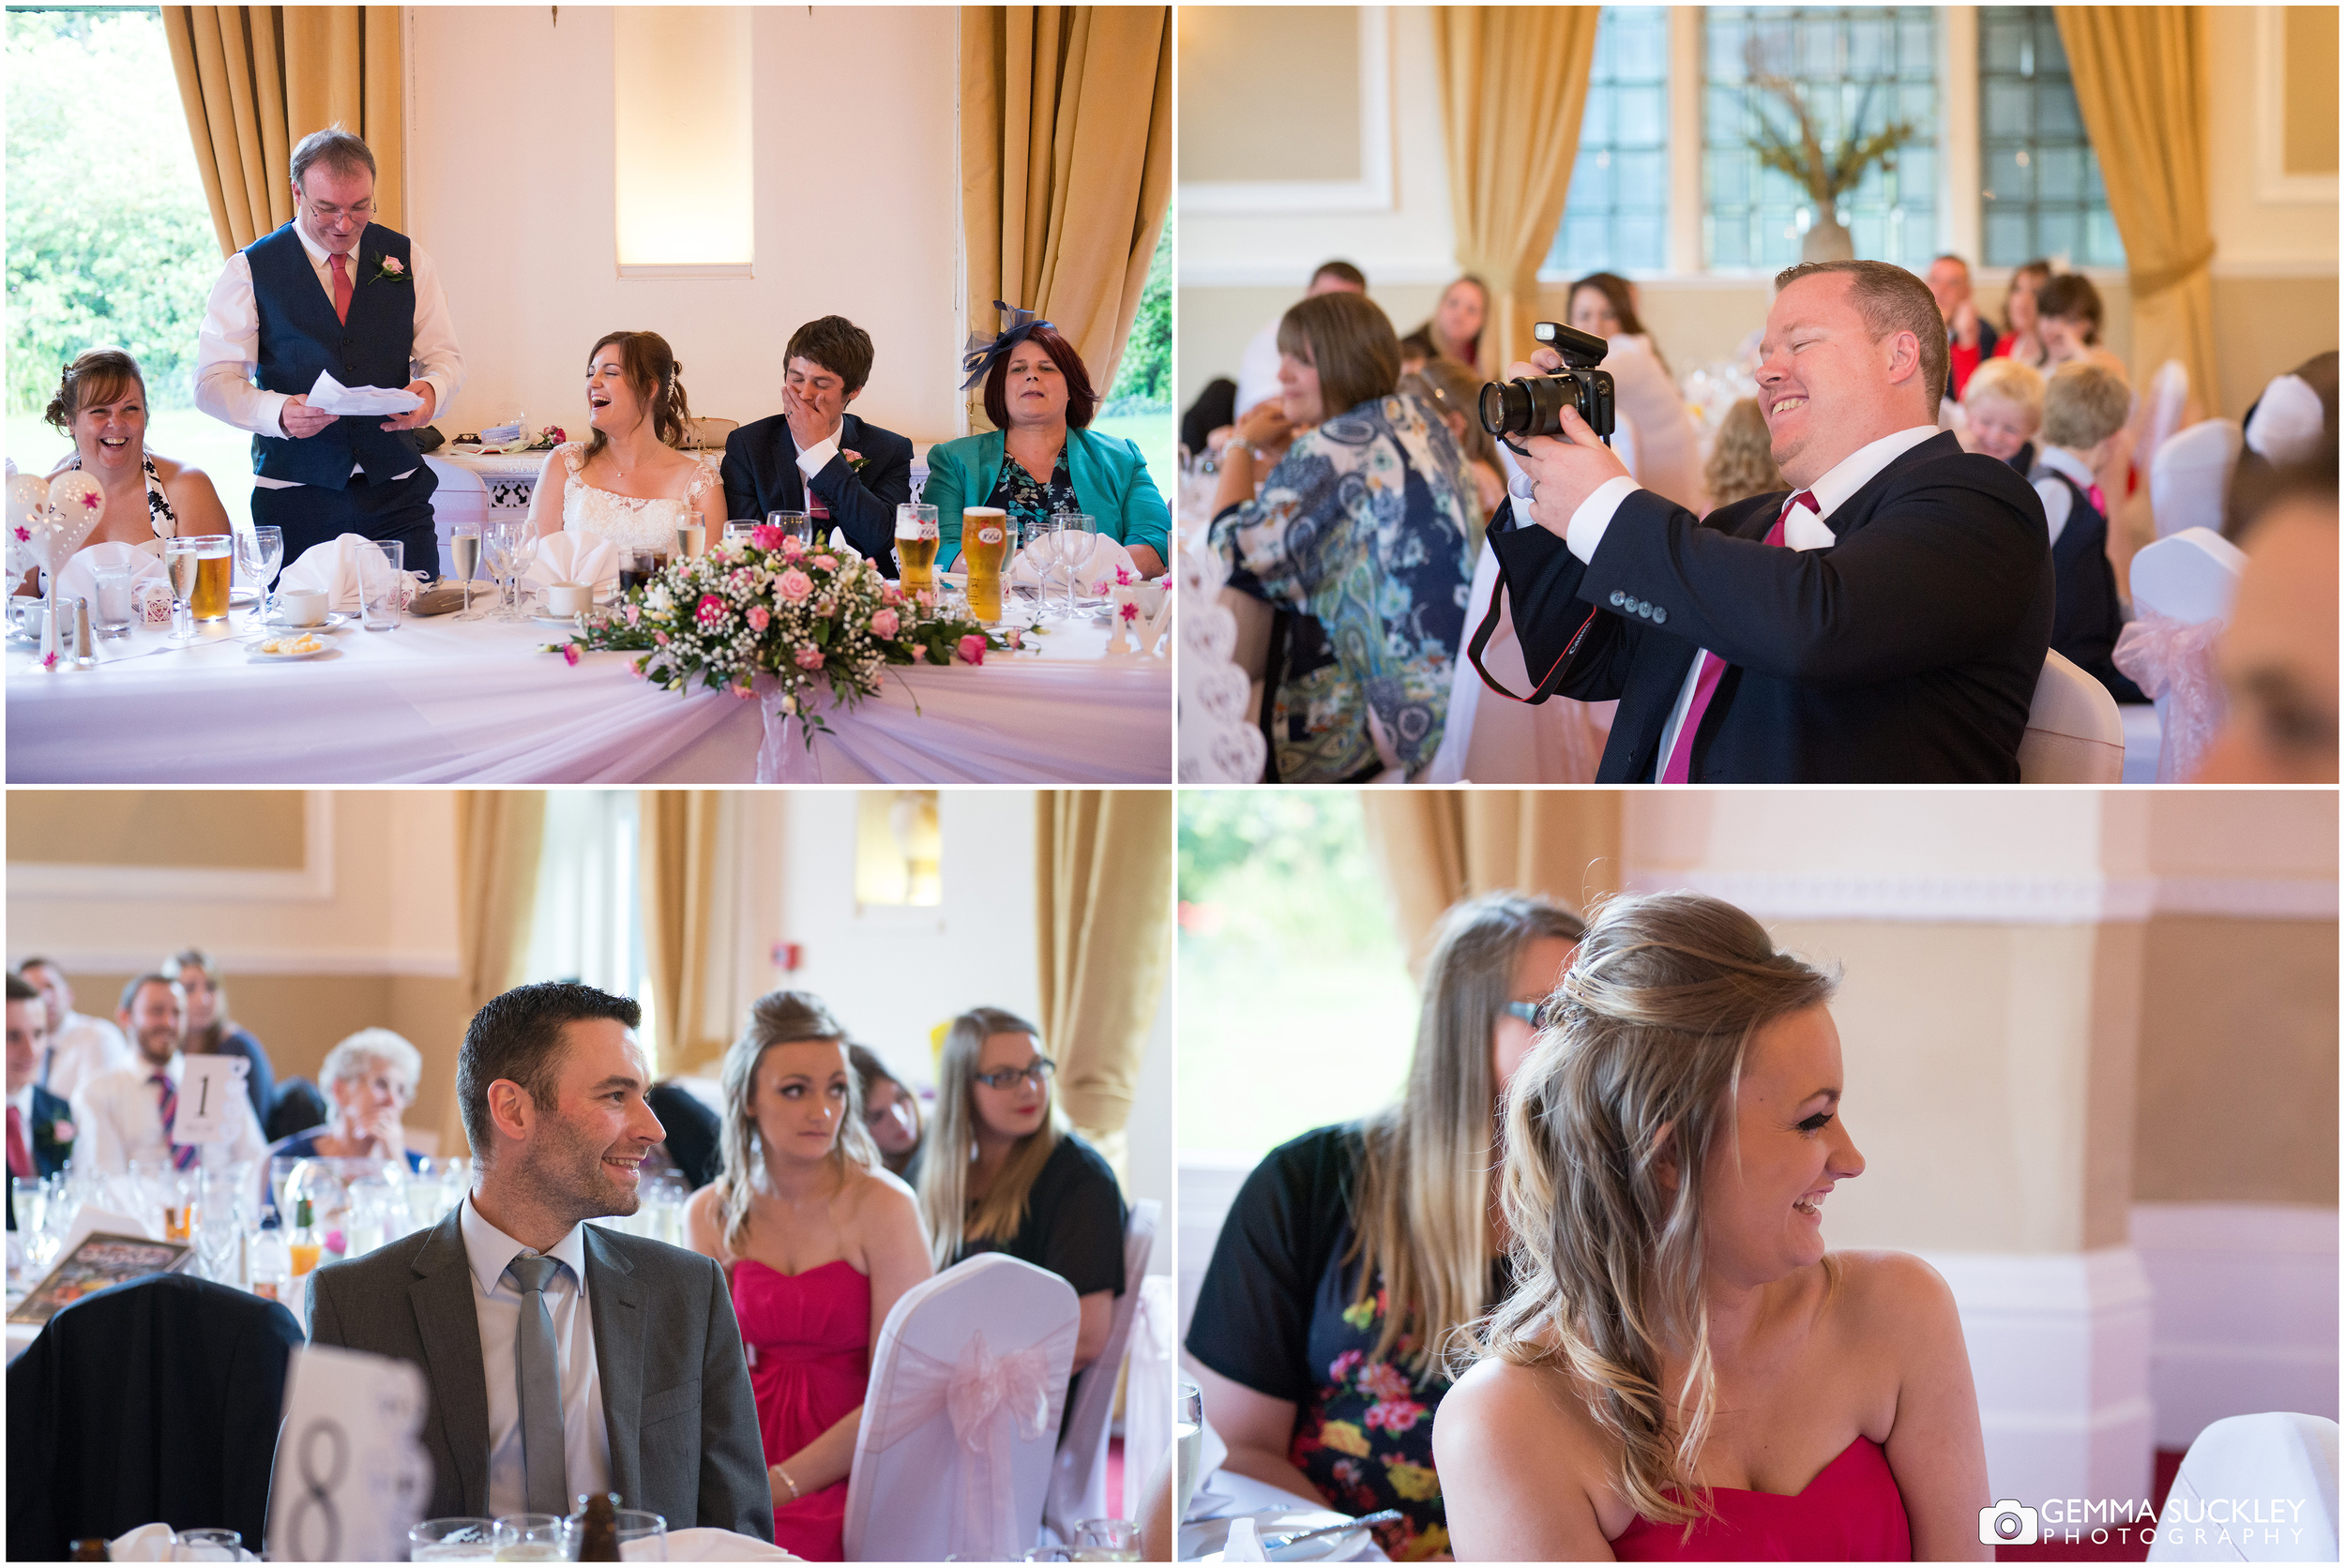 craiglands-ilkley-wedding.jpg